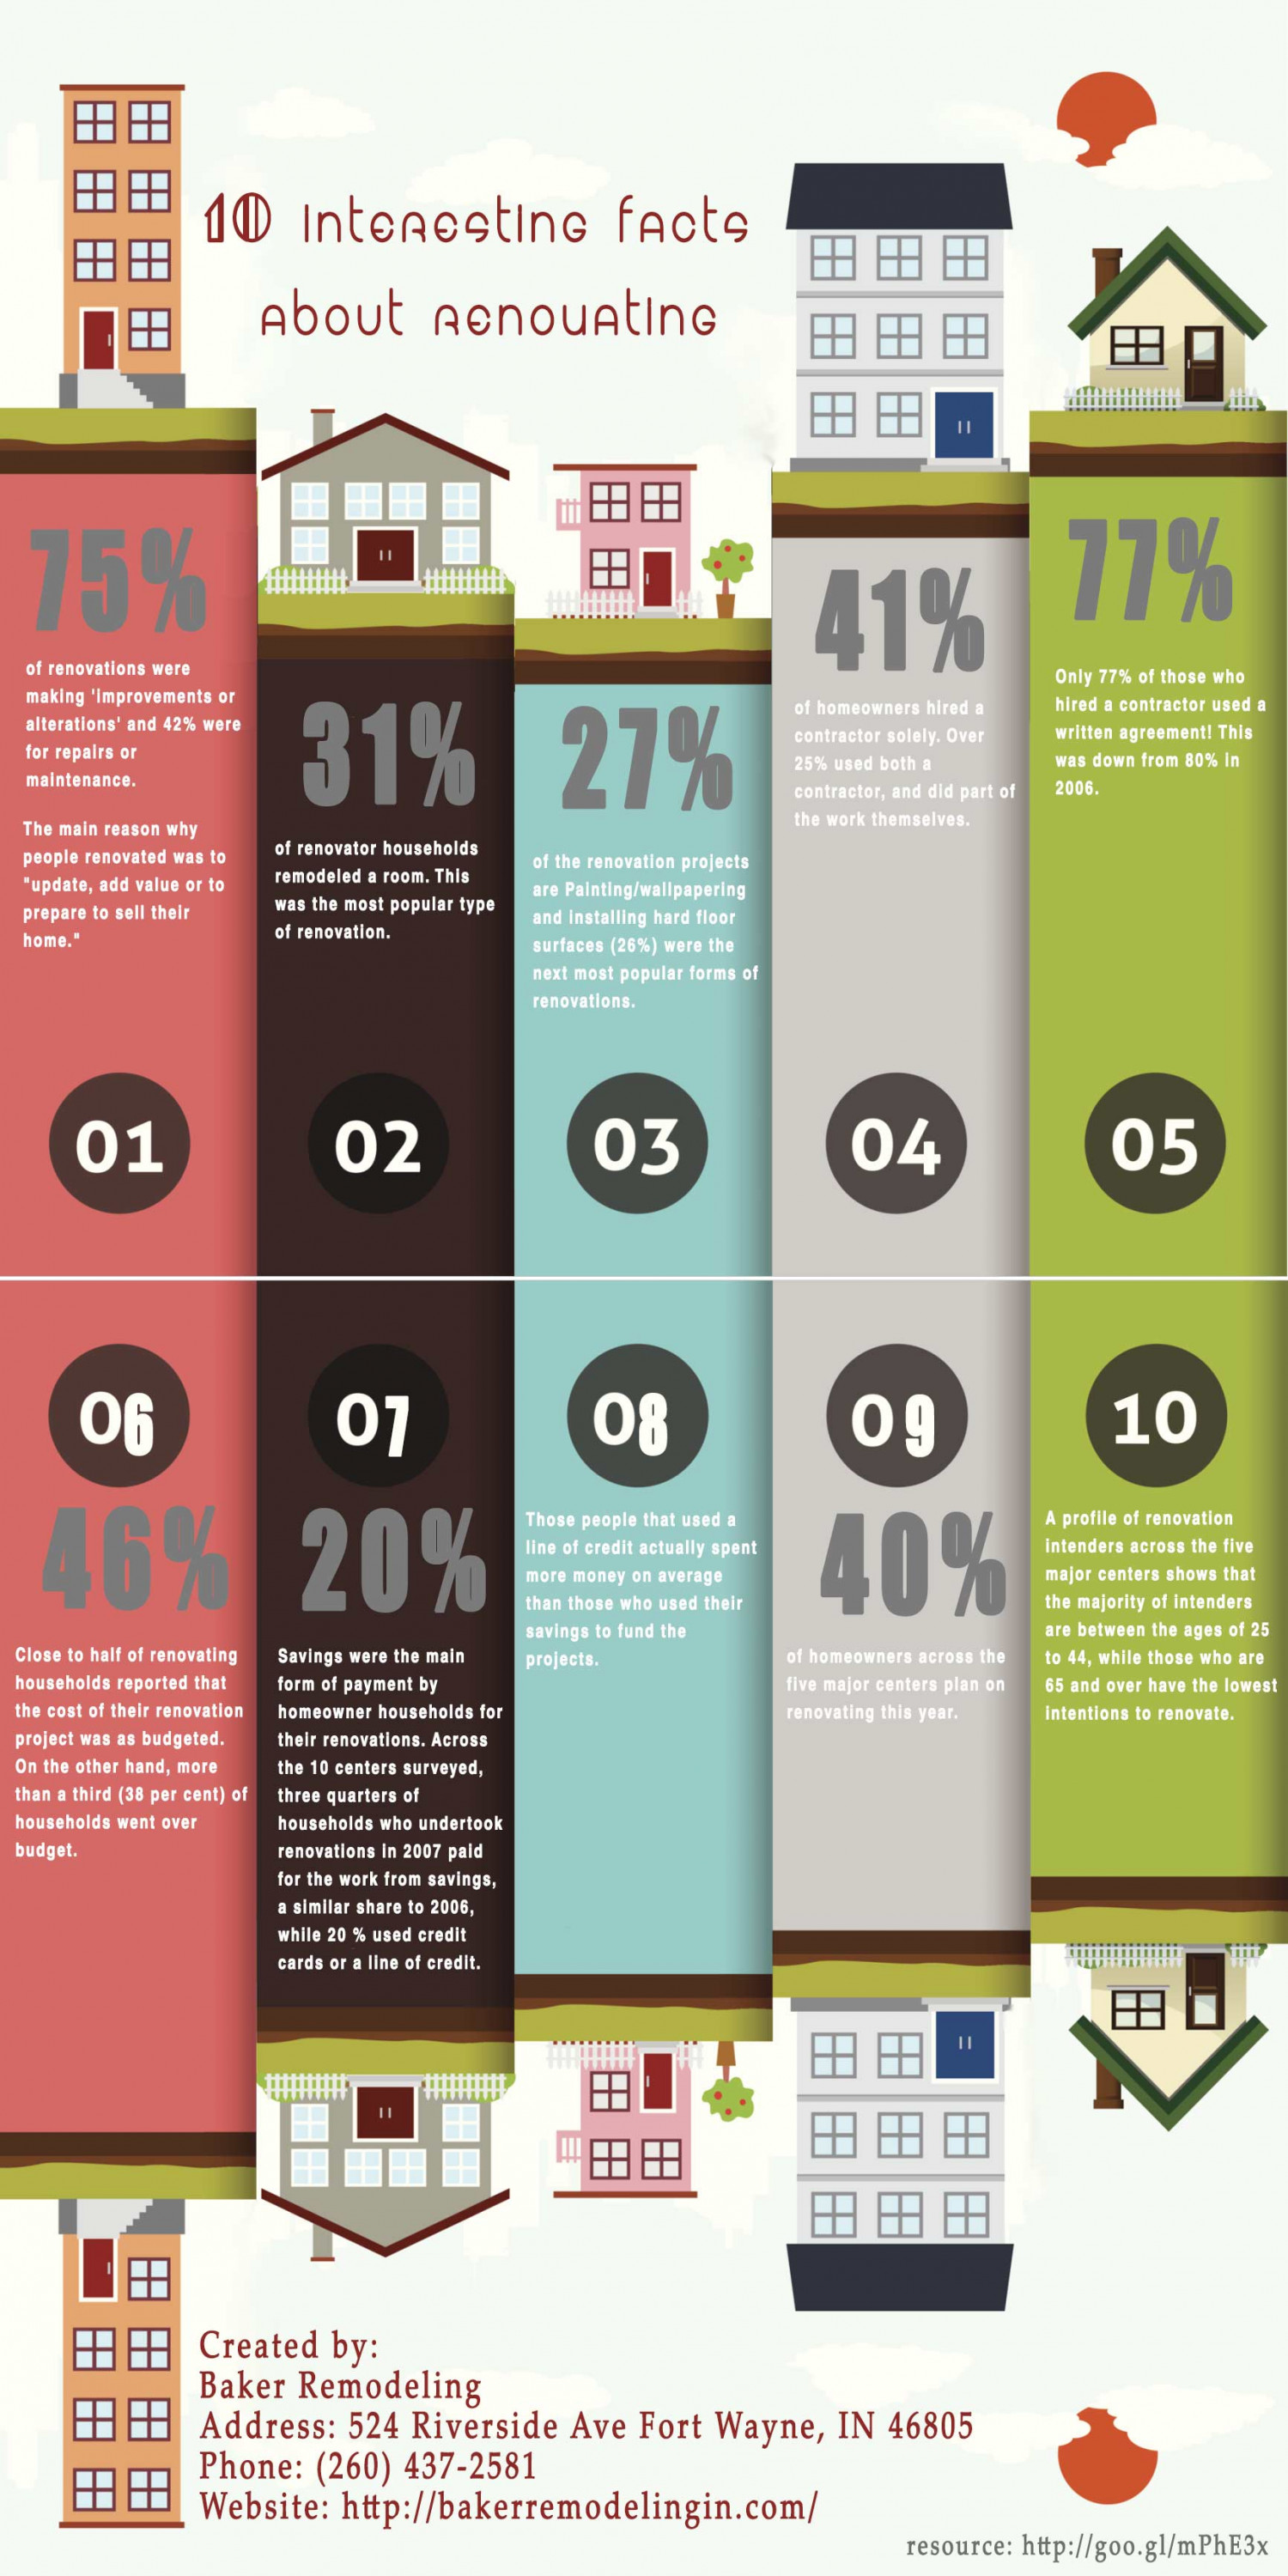 10 Interesting Facts About Renovating Infographic